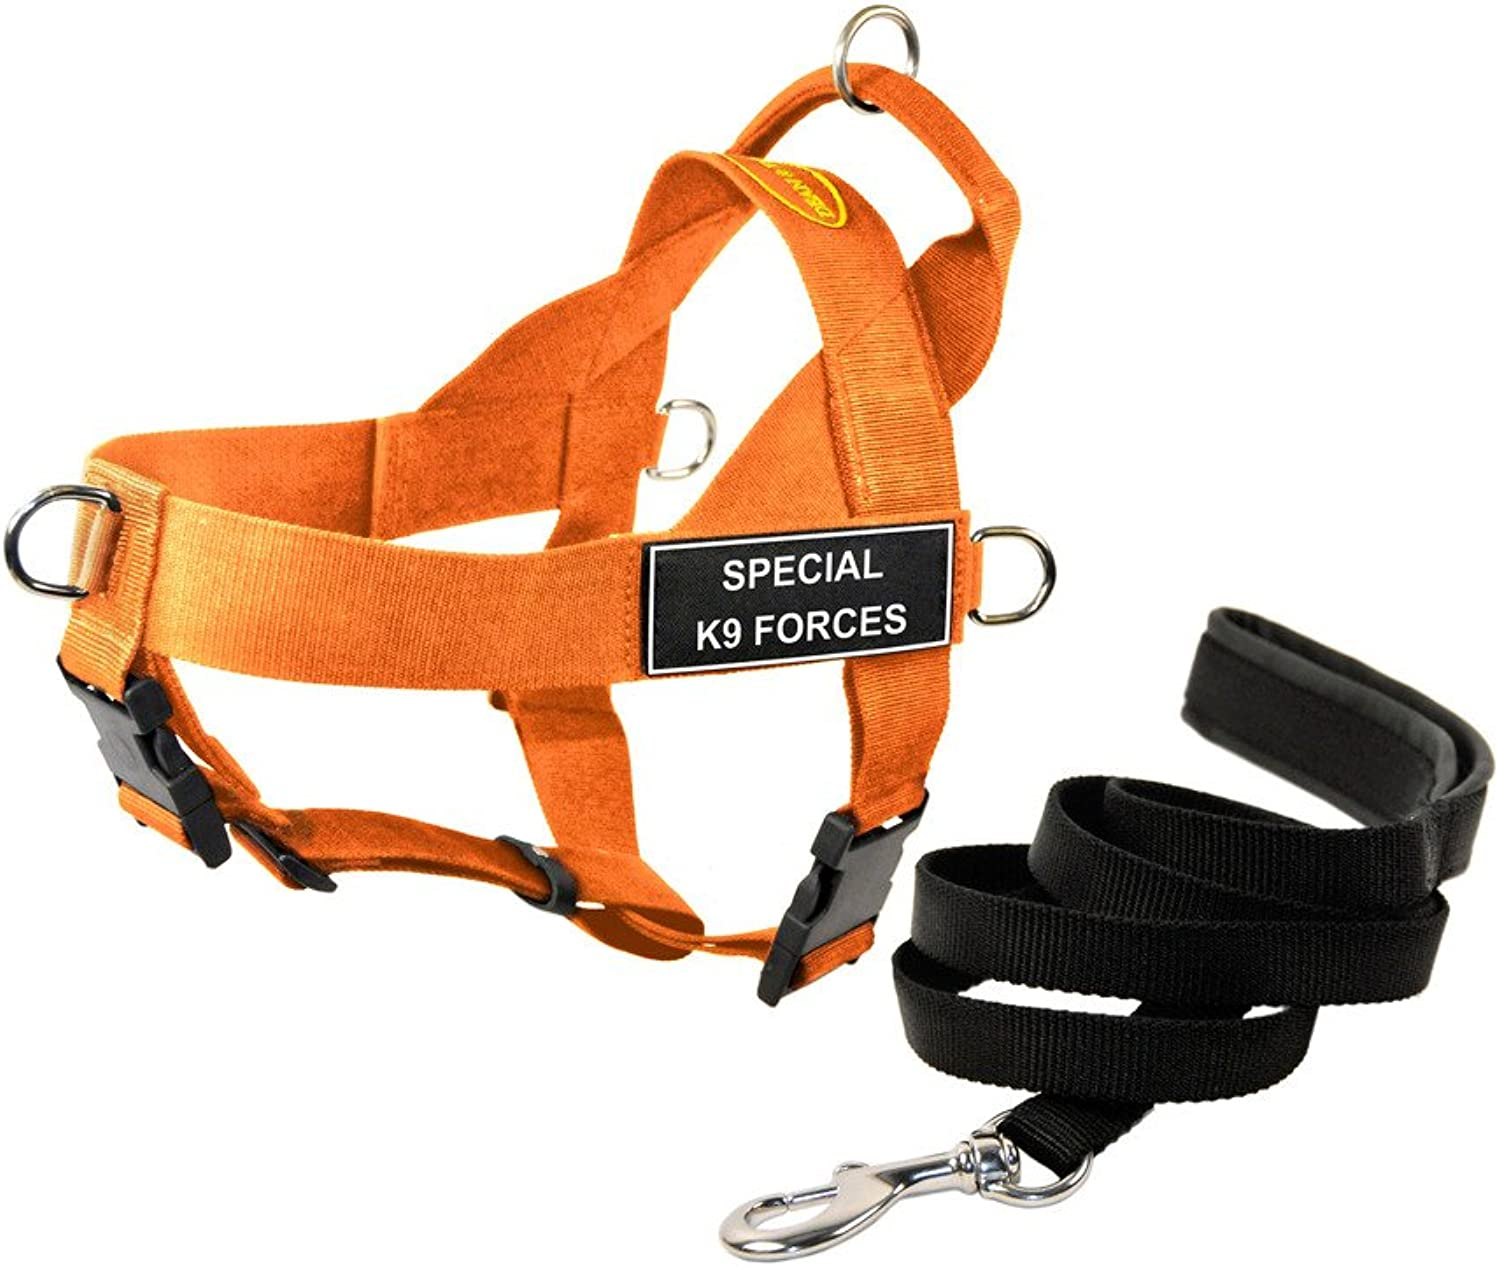 Dean & Tyler DT Universal No Pull Dog Harness with Special K9 Forces Patches and Leash, orange, XLarge